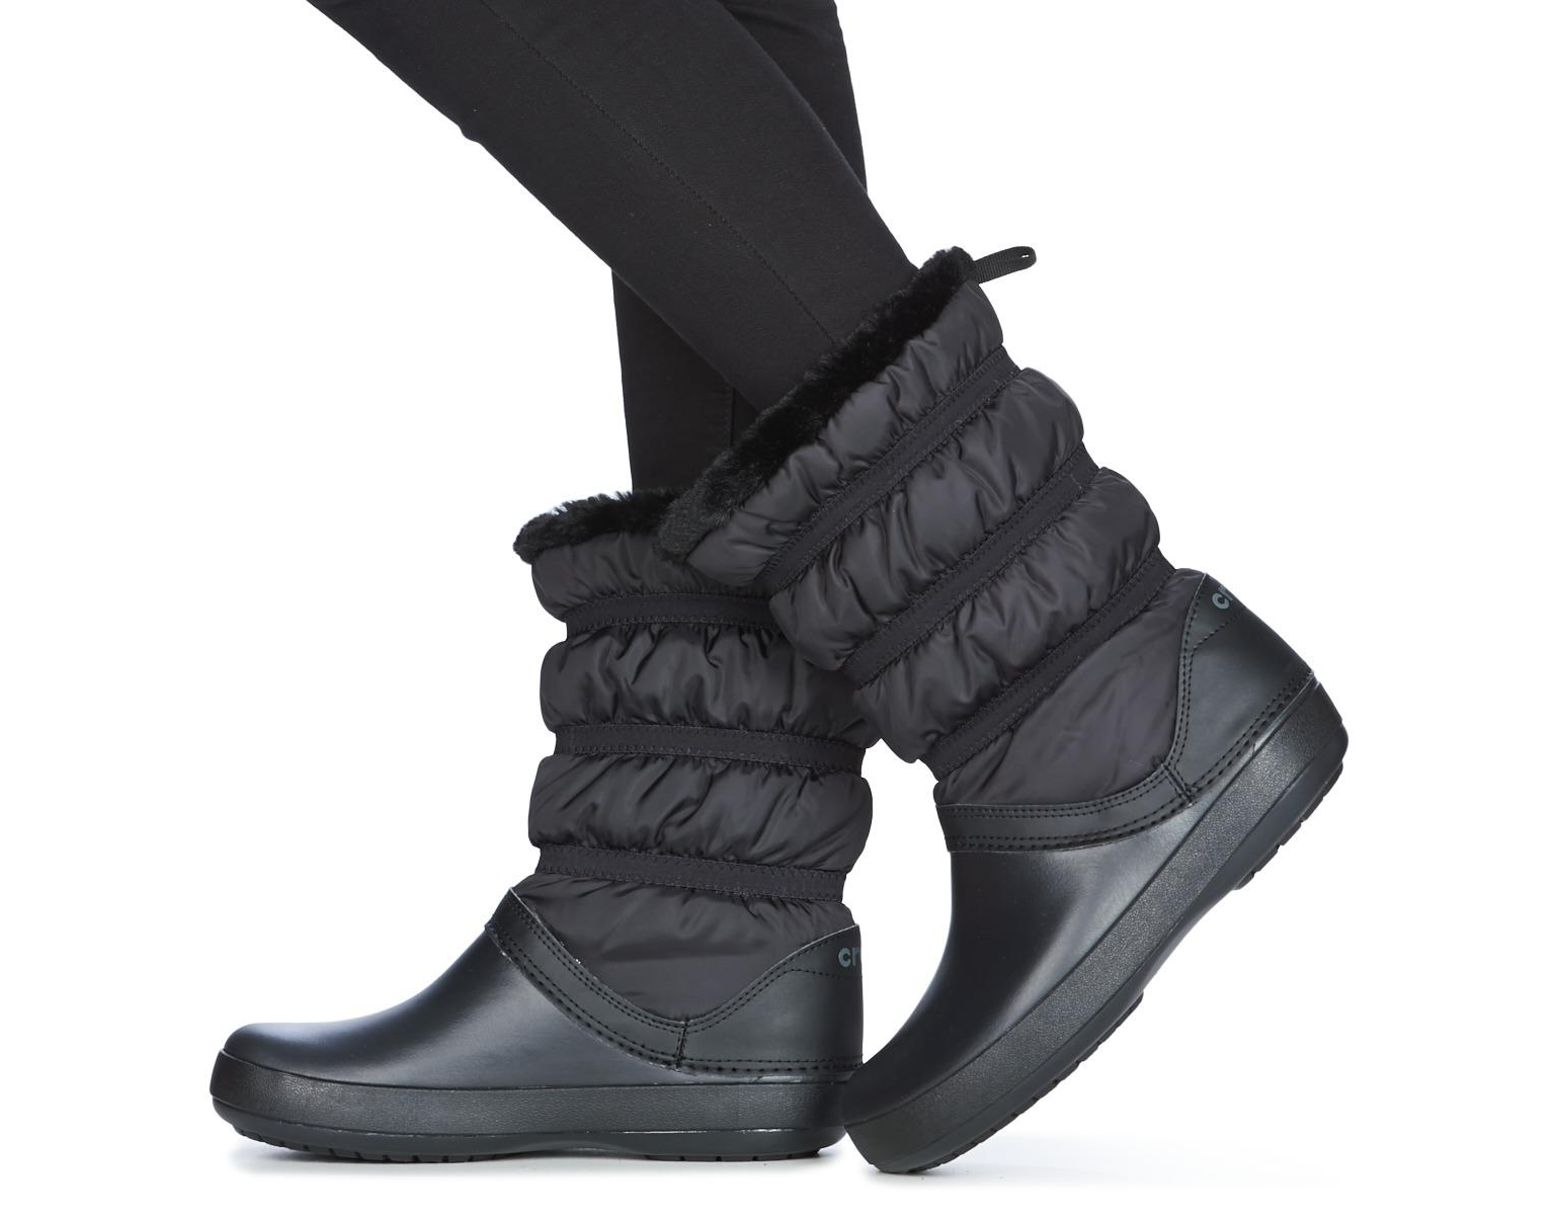 7e35bcc8ada Crocs™ Crocband Winter Boot Women's Snow Boots In Black in Black - Lyst